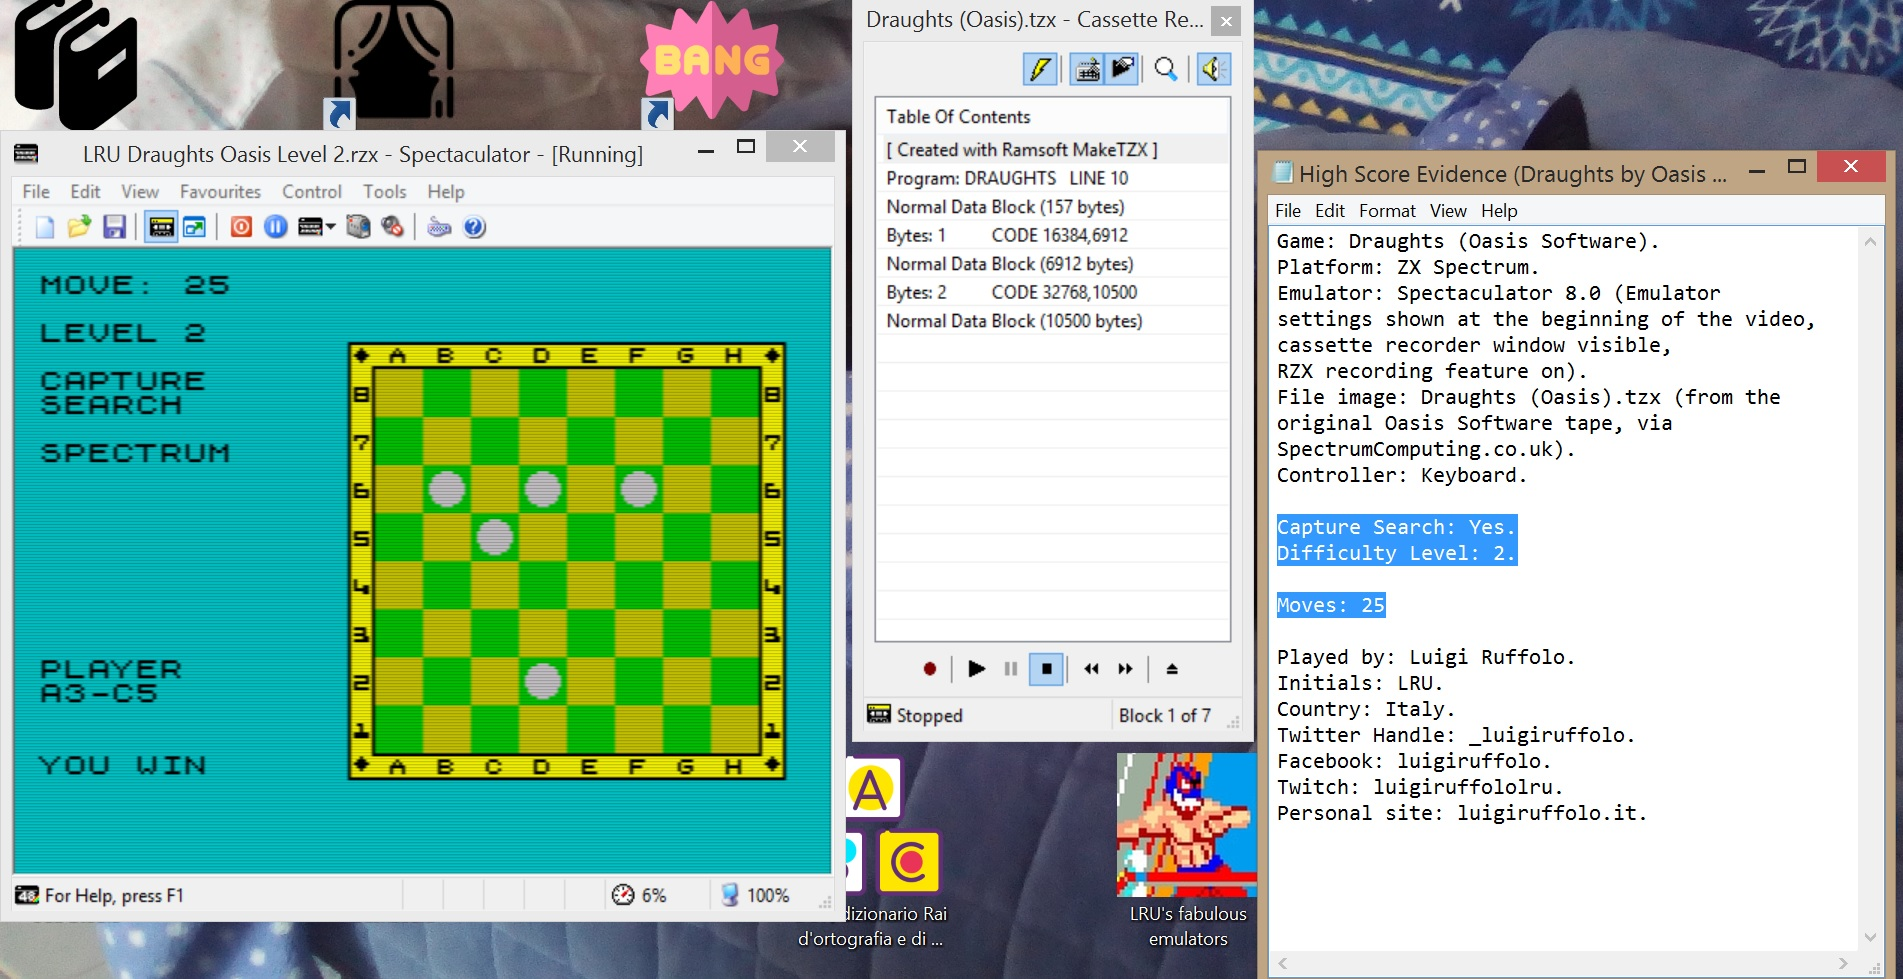 LuigiRuffolo: Draughts [Oasis Software][Level 2: Capture Search][Moves to Win] (ZX Spectrum Emulated) 25 points on 2020-06-27 07:30:03